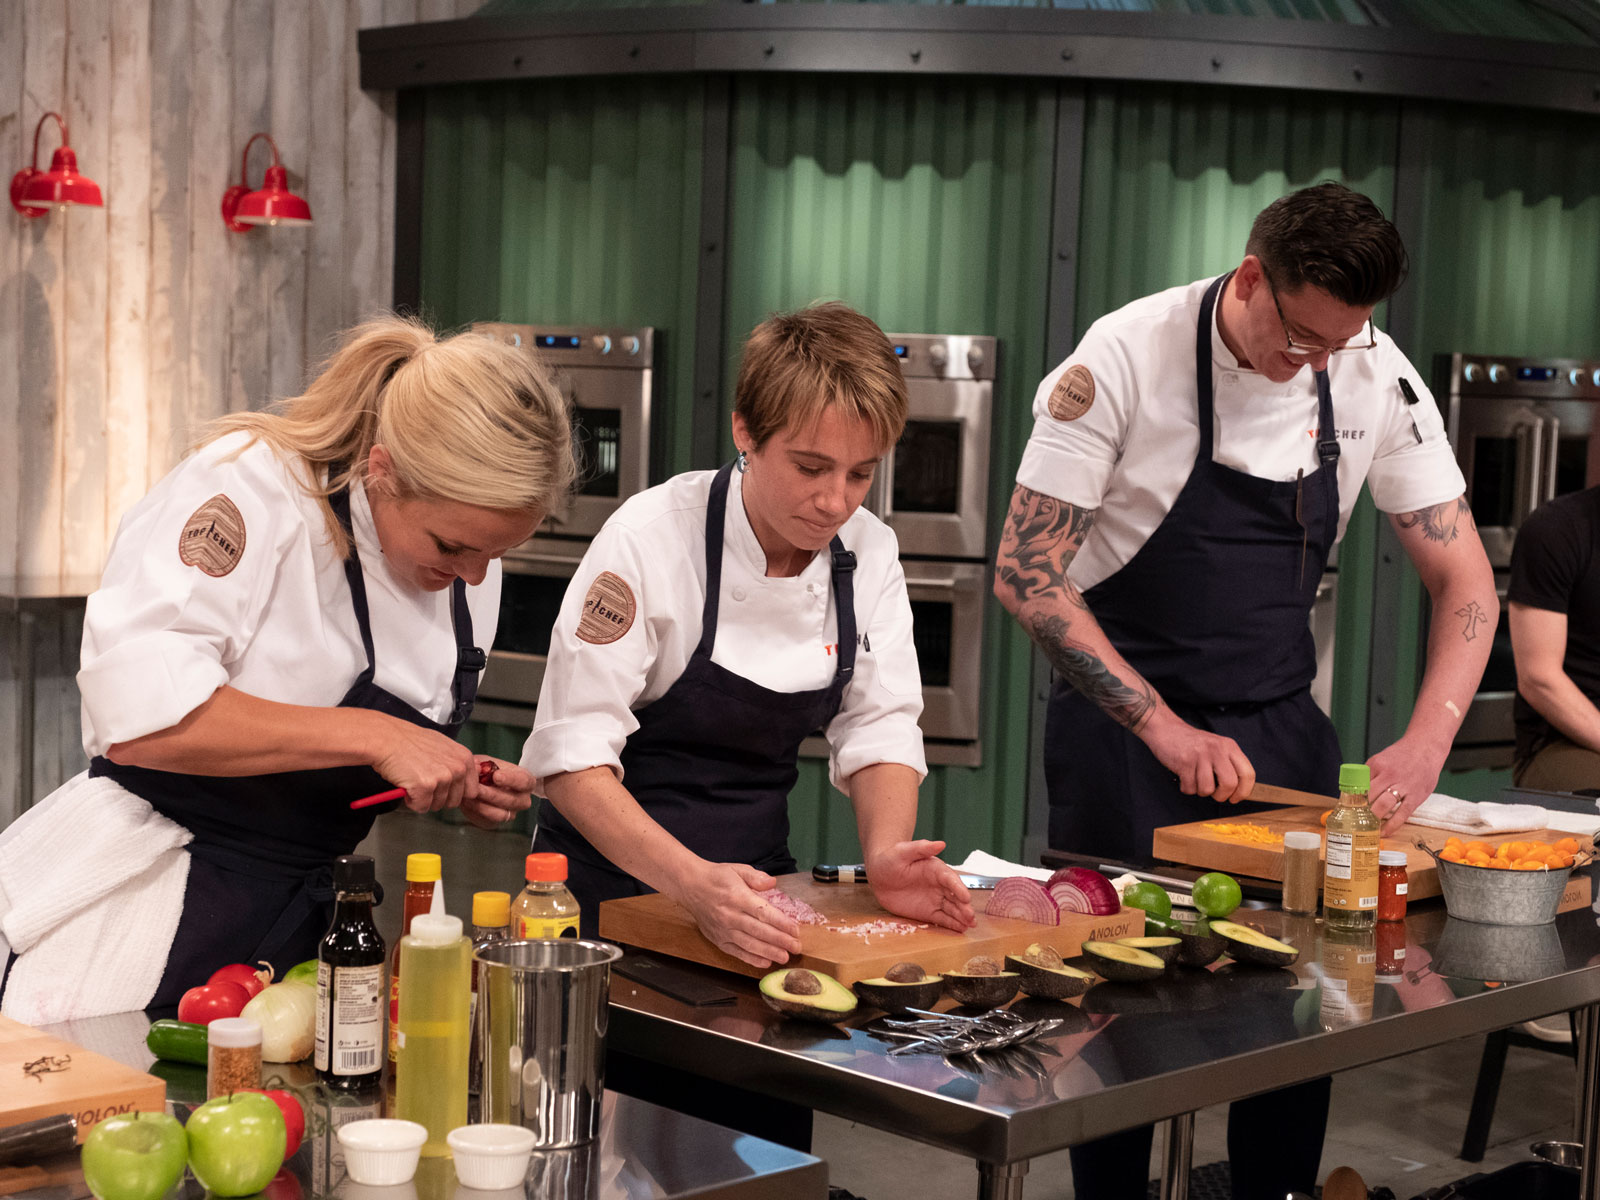 top-chef-s16e06-kelsey-adrienne-brian-team-brother-FT-BLOG0119.JPG